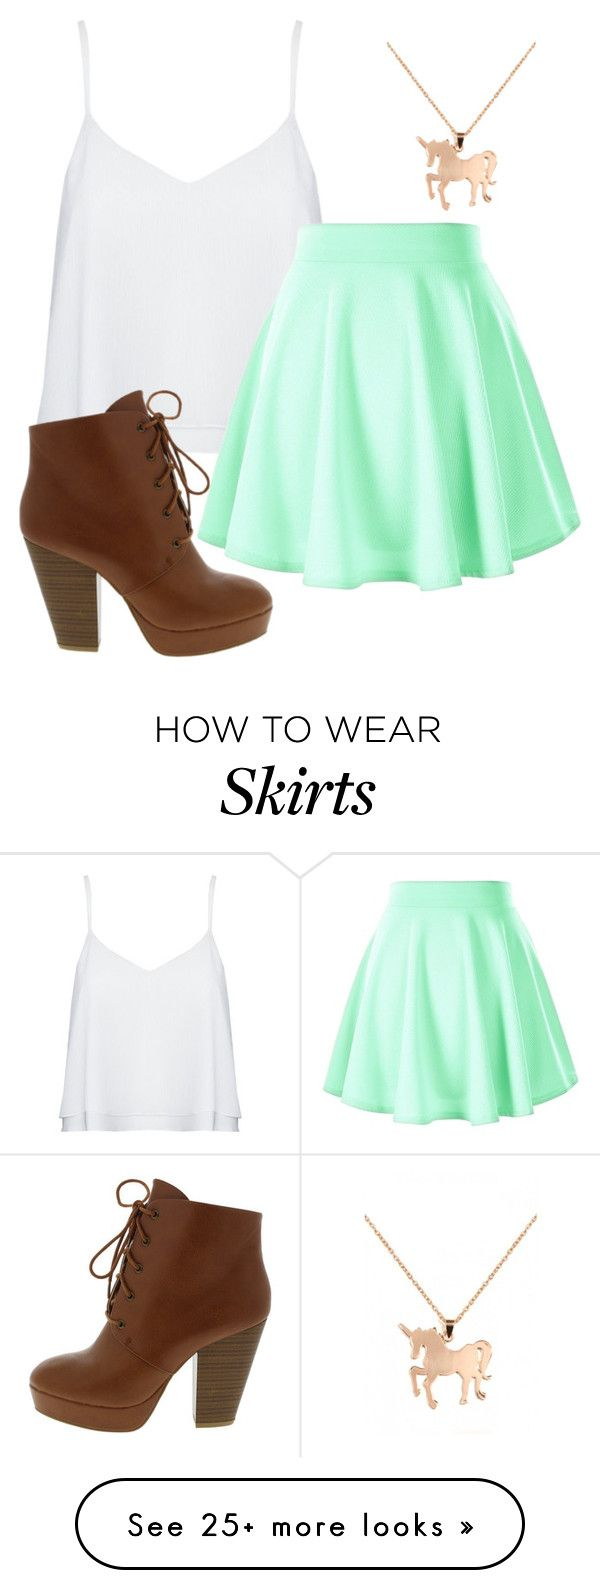 """Skater skirts are the bæ"" by emi-elephant on Polyvore featuring Alice + Olivia, Louche, women's clothing, women's fashion, women, female, woman, misses, juniors and Summer"